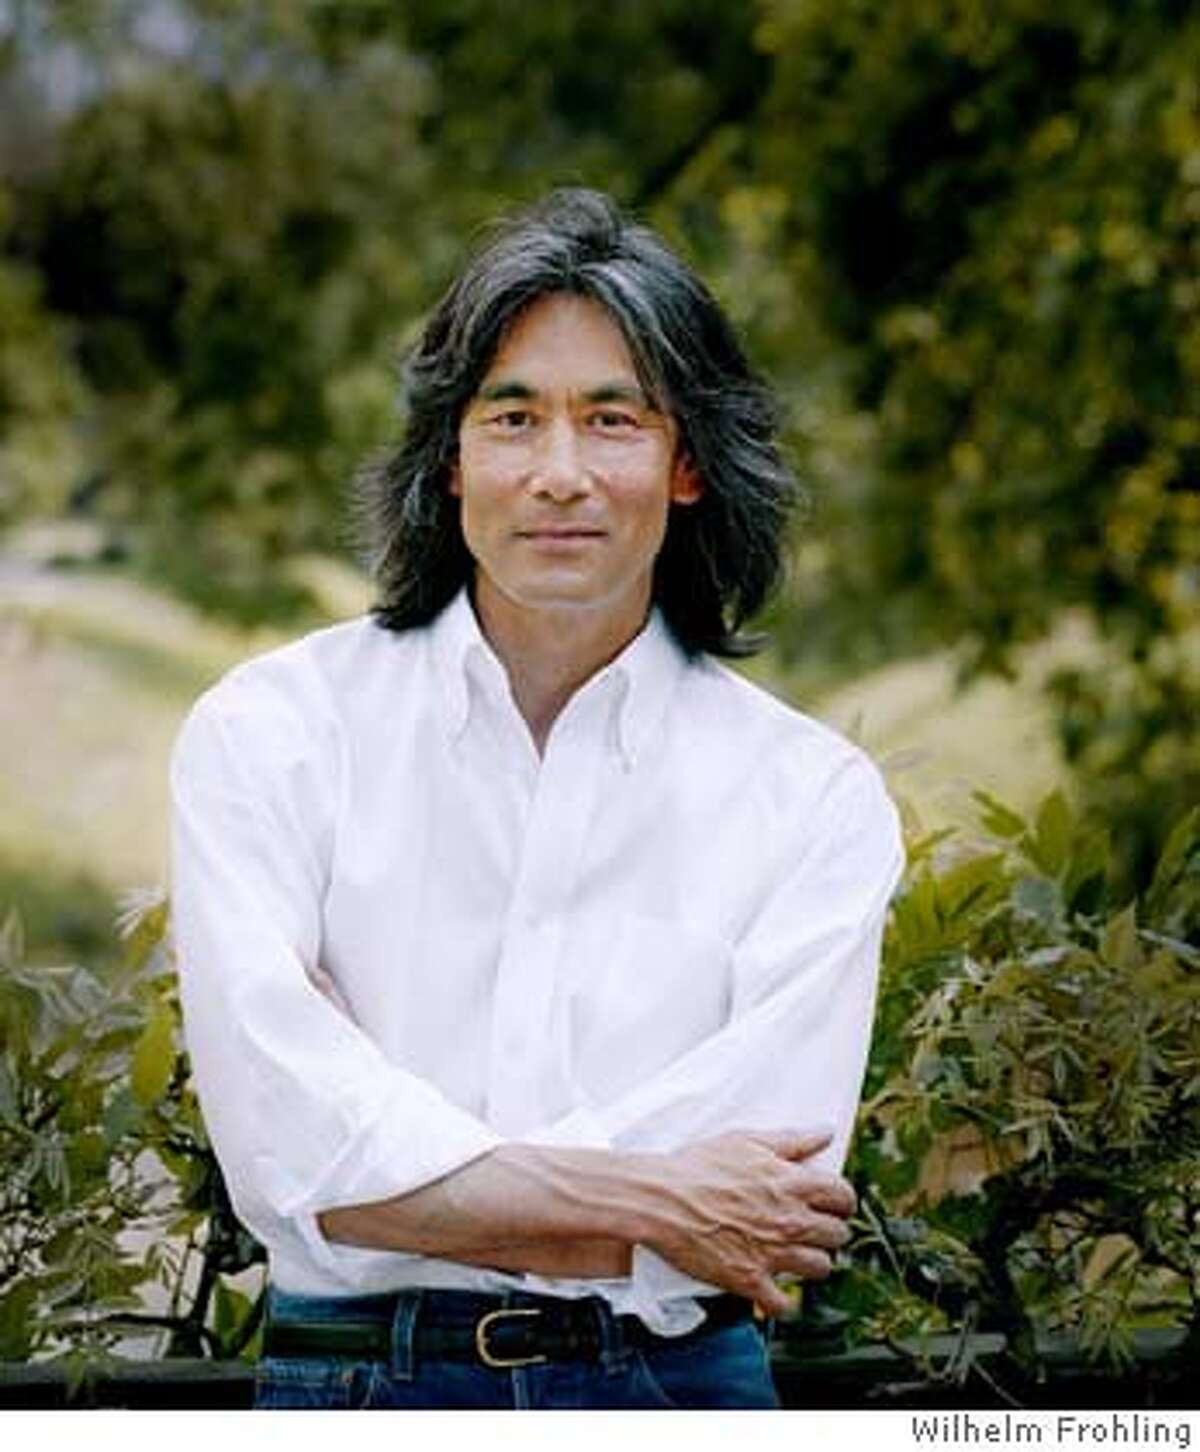 Photo of conductor Kent Nagano. Credit: Wilhelm Frohling and Blick in die Landschaft